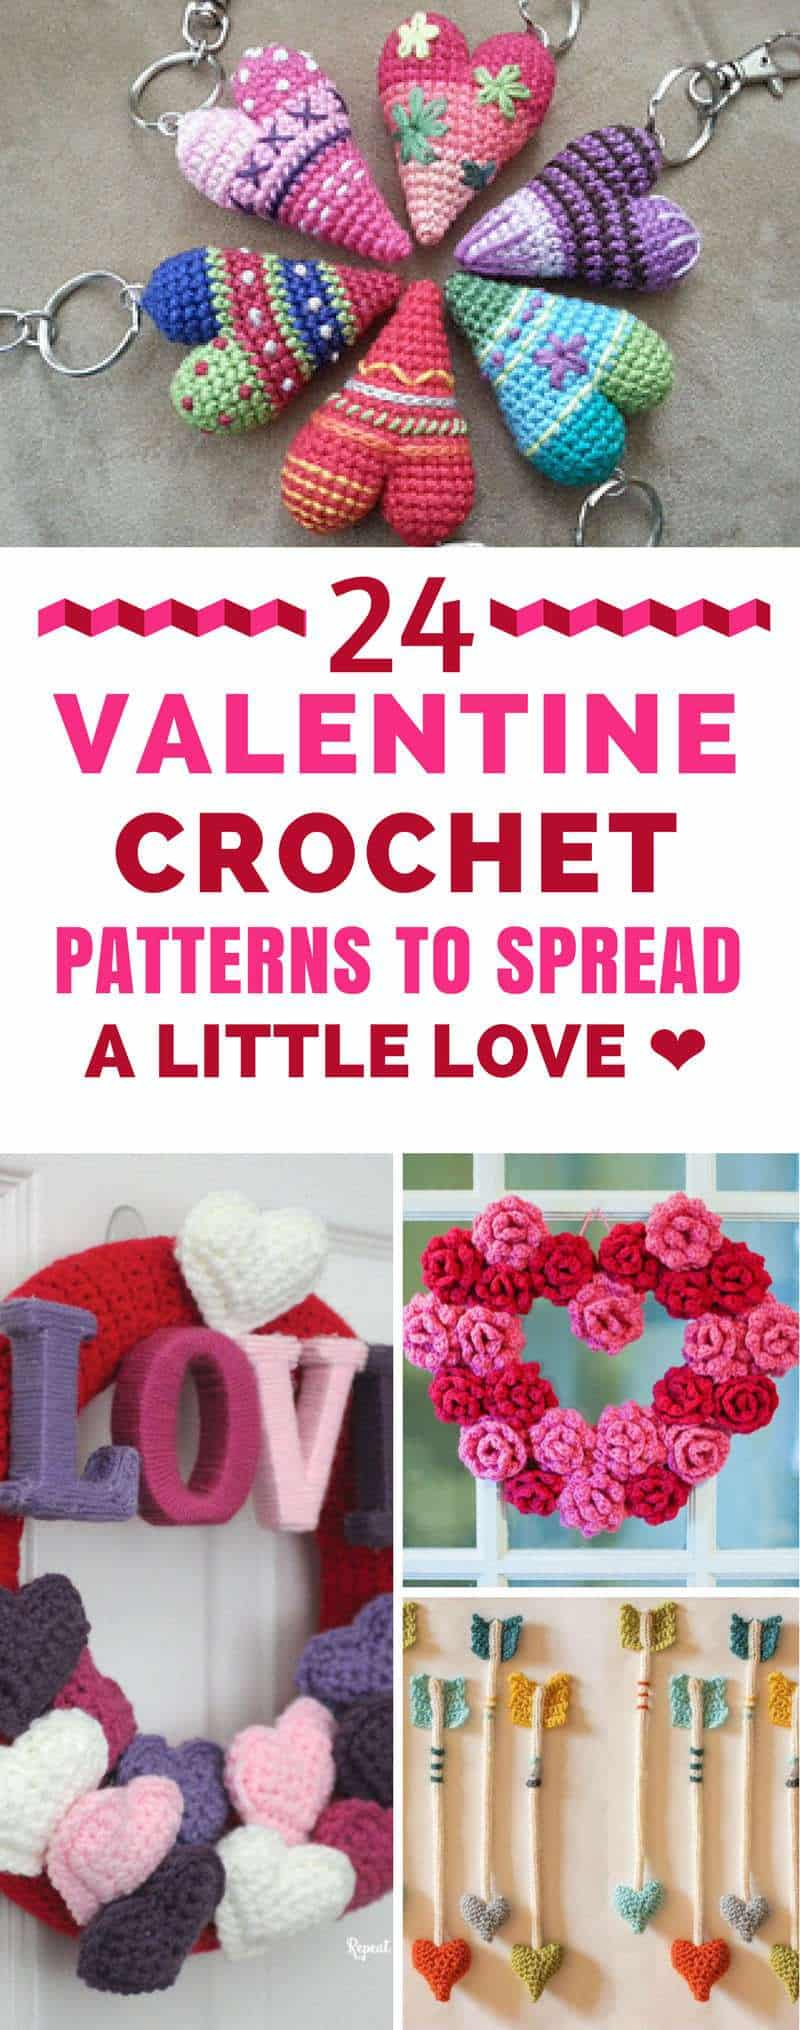 Valentine's Day Crochet Patterns - put a little love on your hook with these gorgeous heart and flower patterns that are perfect for Valentine's Day decor and gift ideas! #valentinesday #crochet